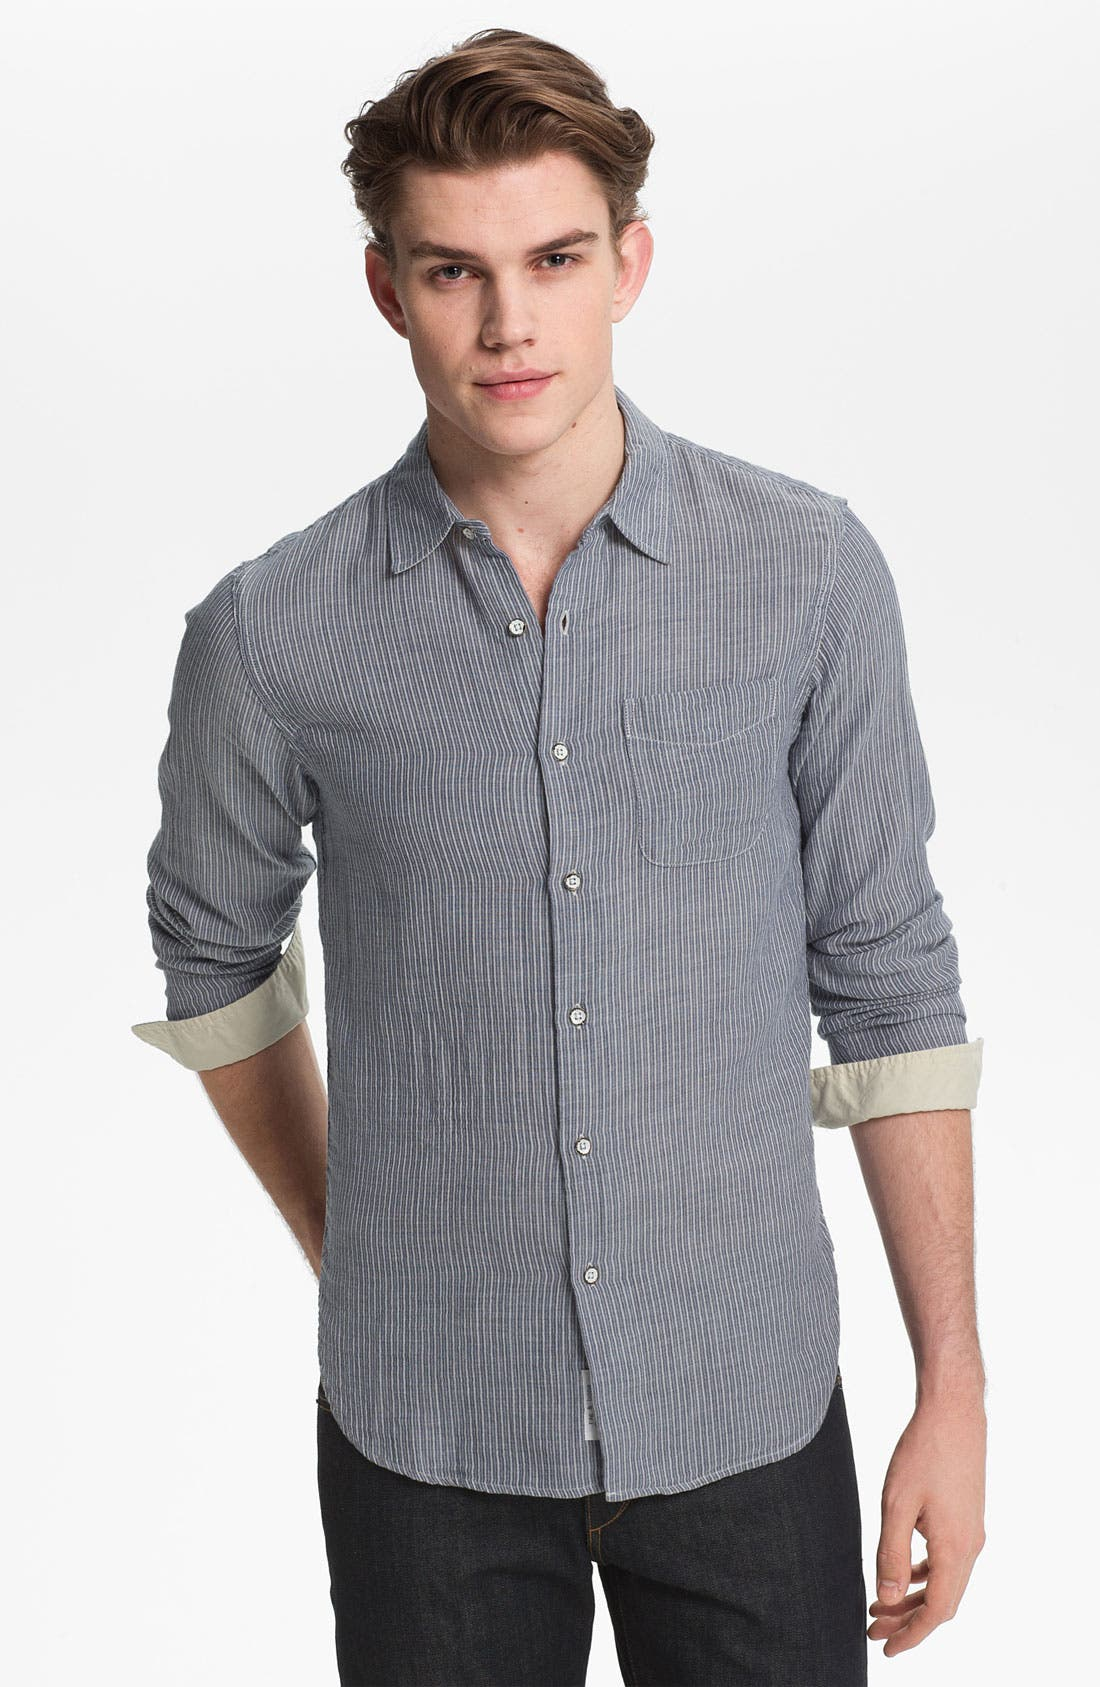 Alternate Image 1 Selected - rag & bone Stripe Herringbone Woven Shirt